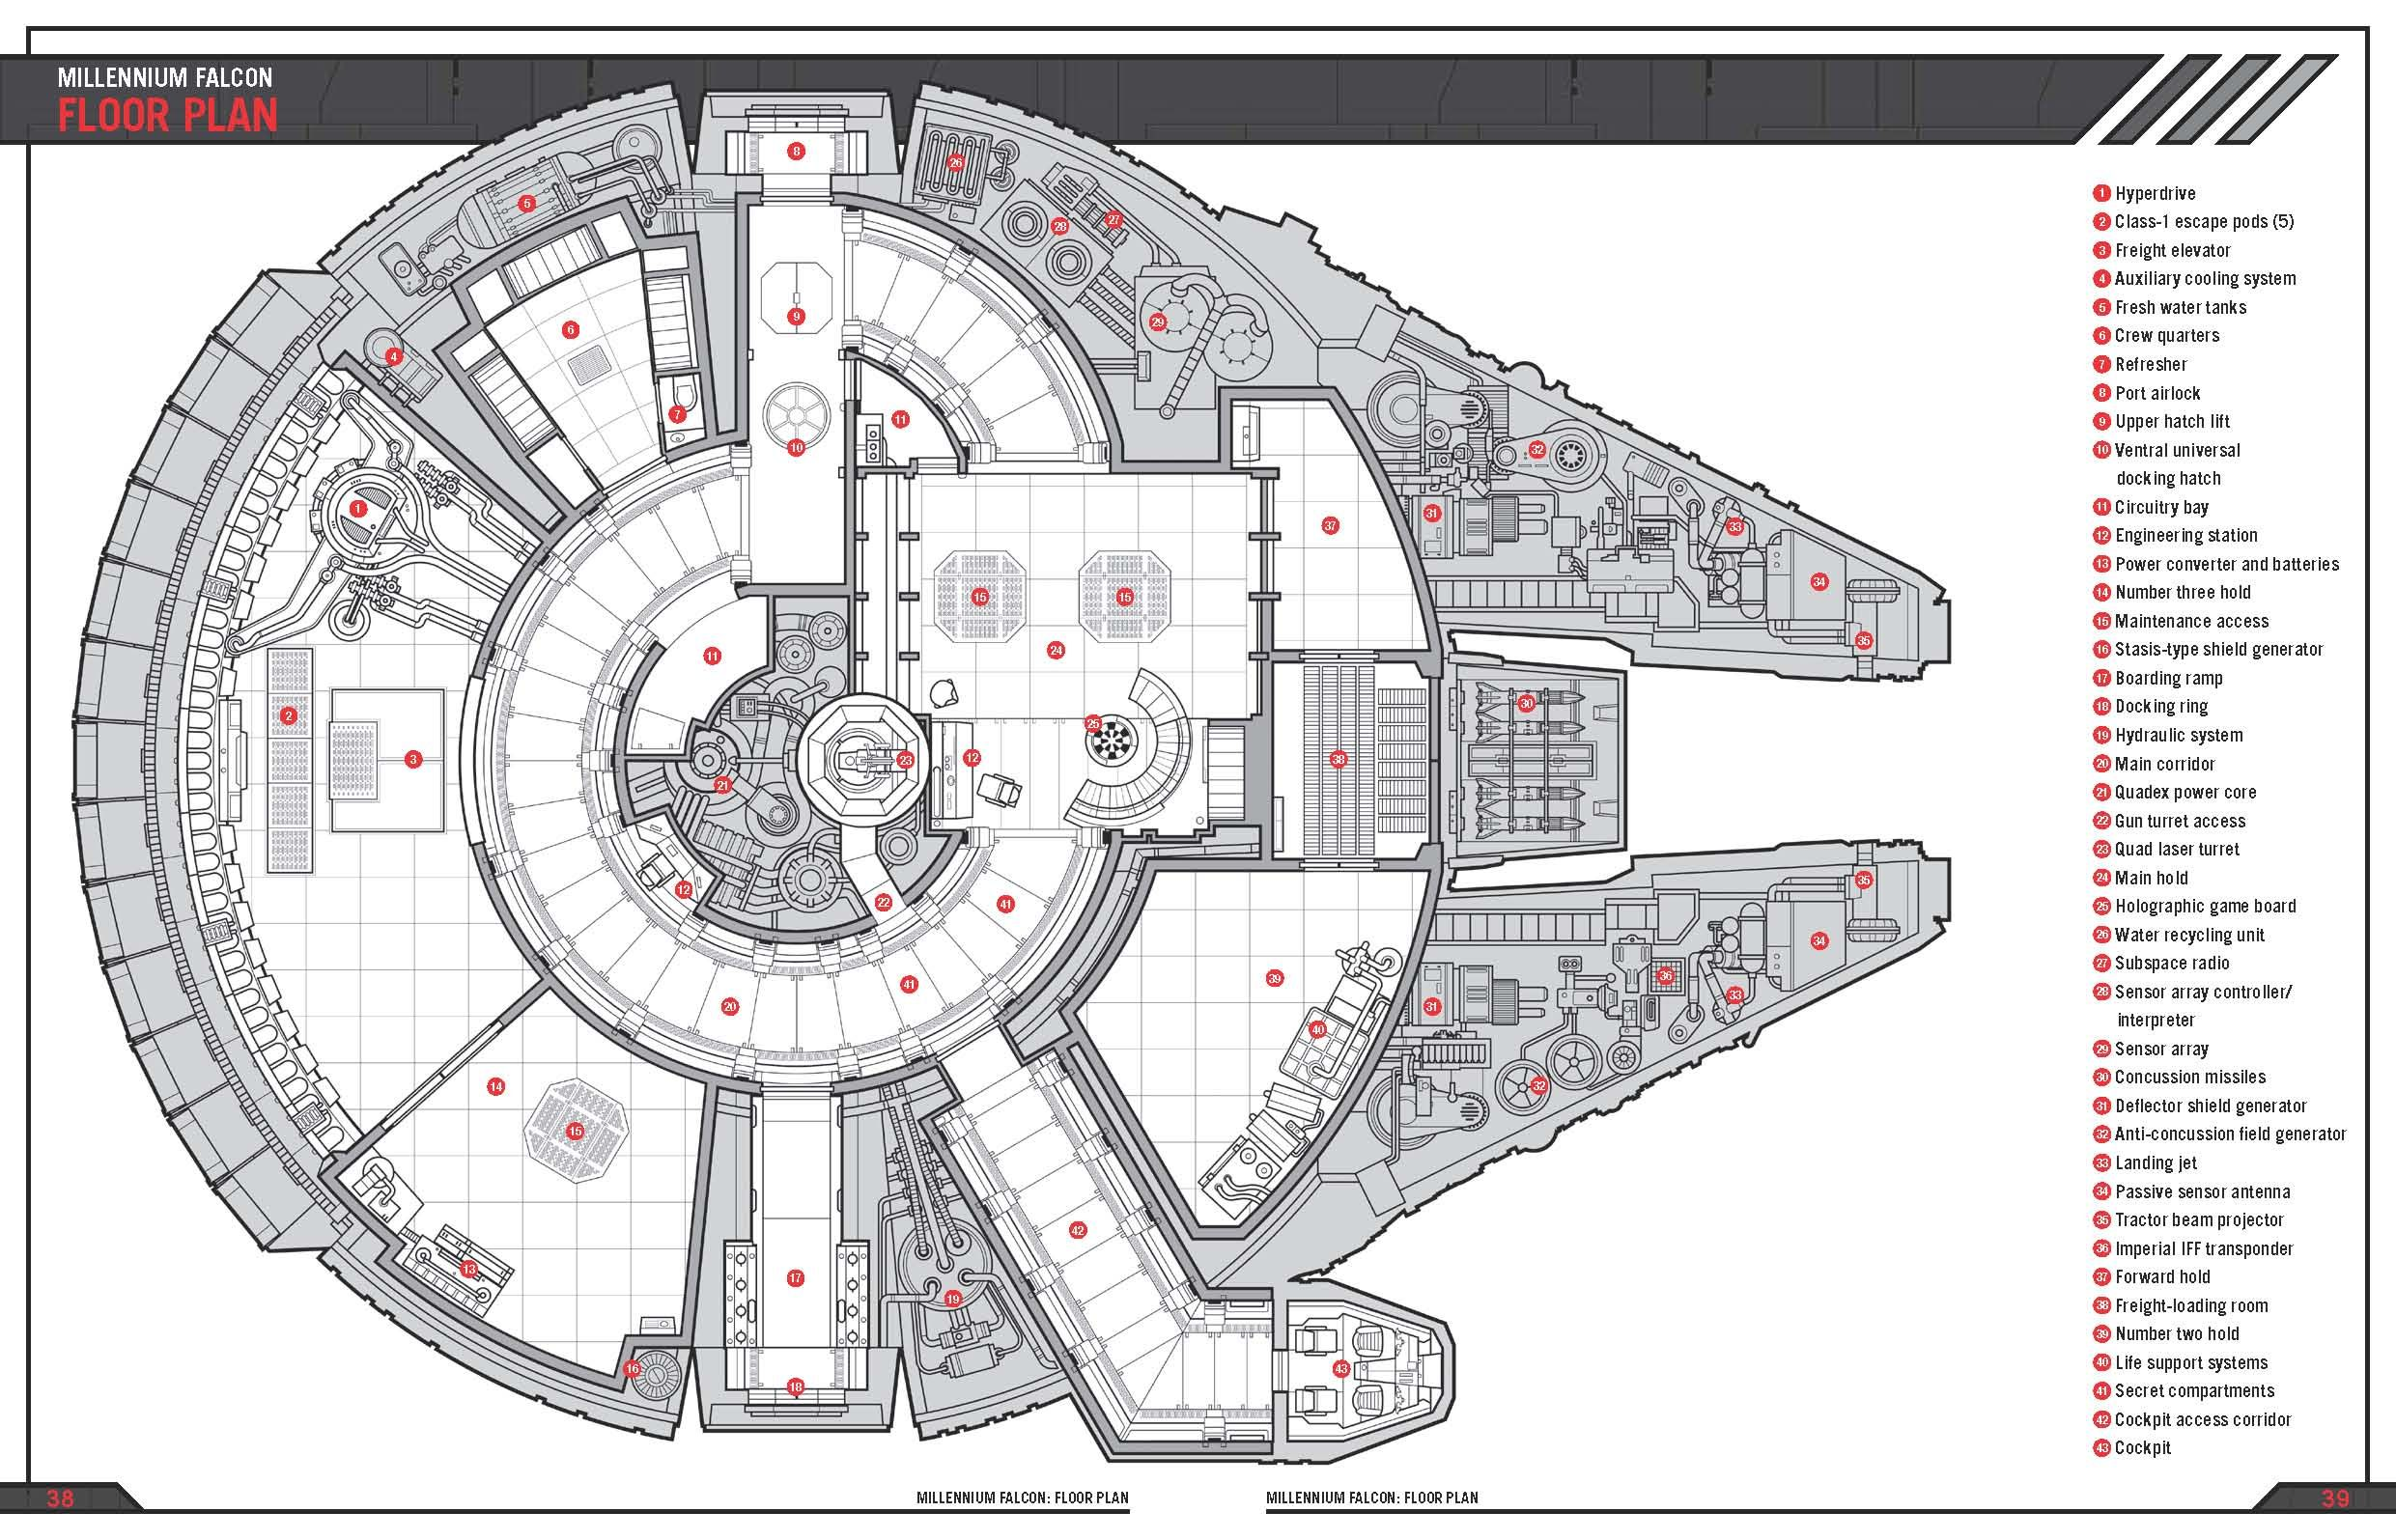 A floor plan of the millennium falcon from star wars from the haynes manual